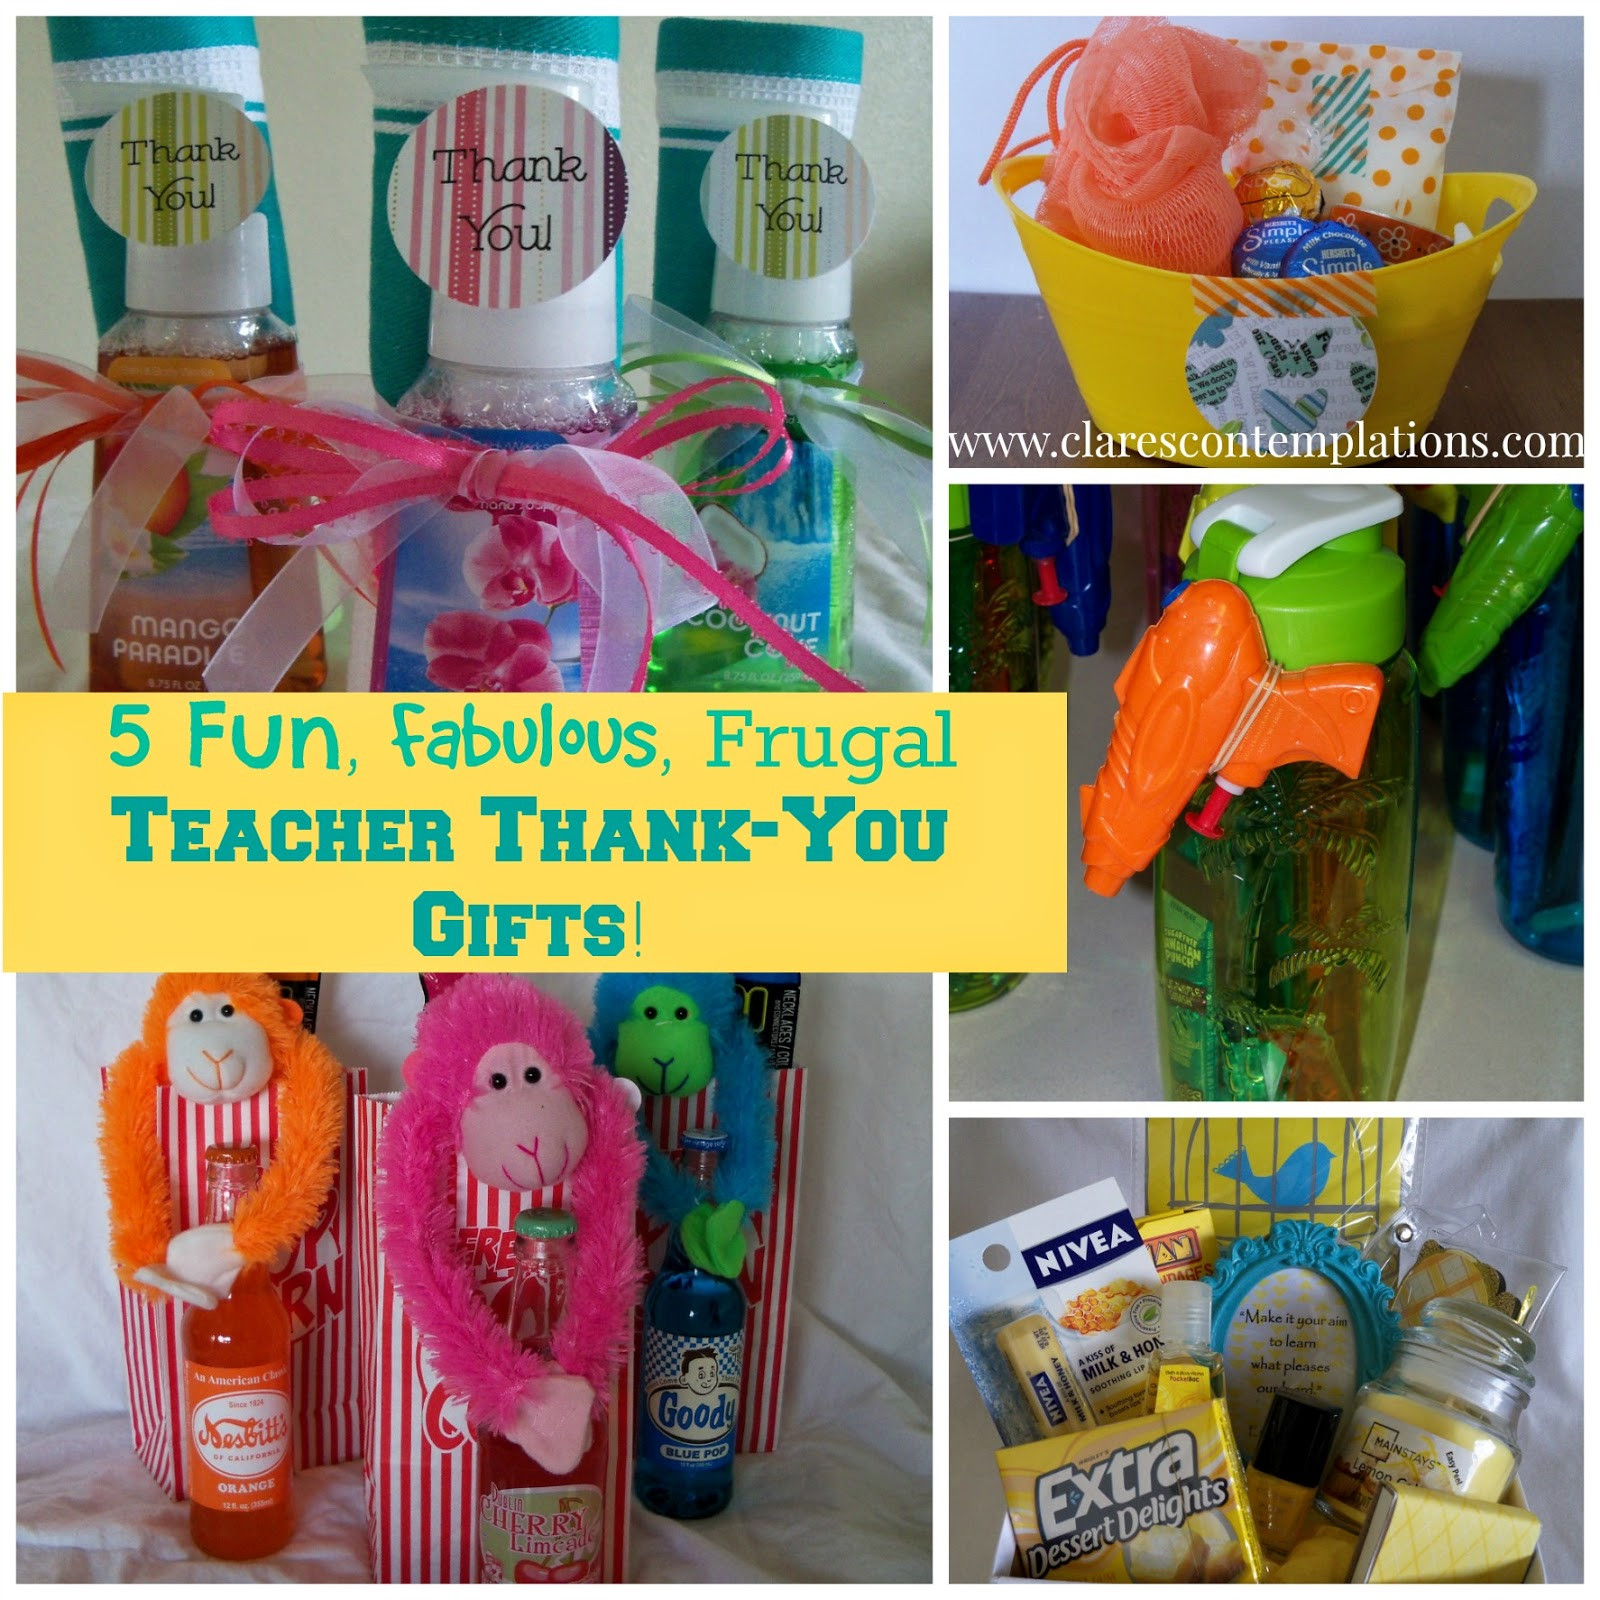 Cool Thank You Gift Ideas  Clare s Contemplations 5 Unique Thoughtful and Frugal